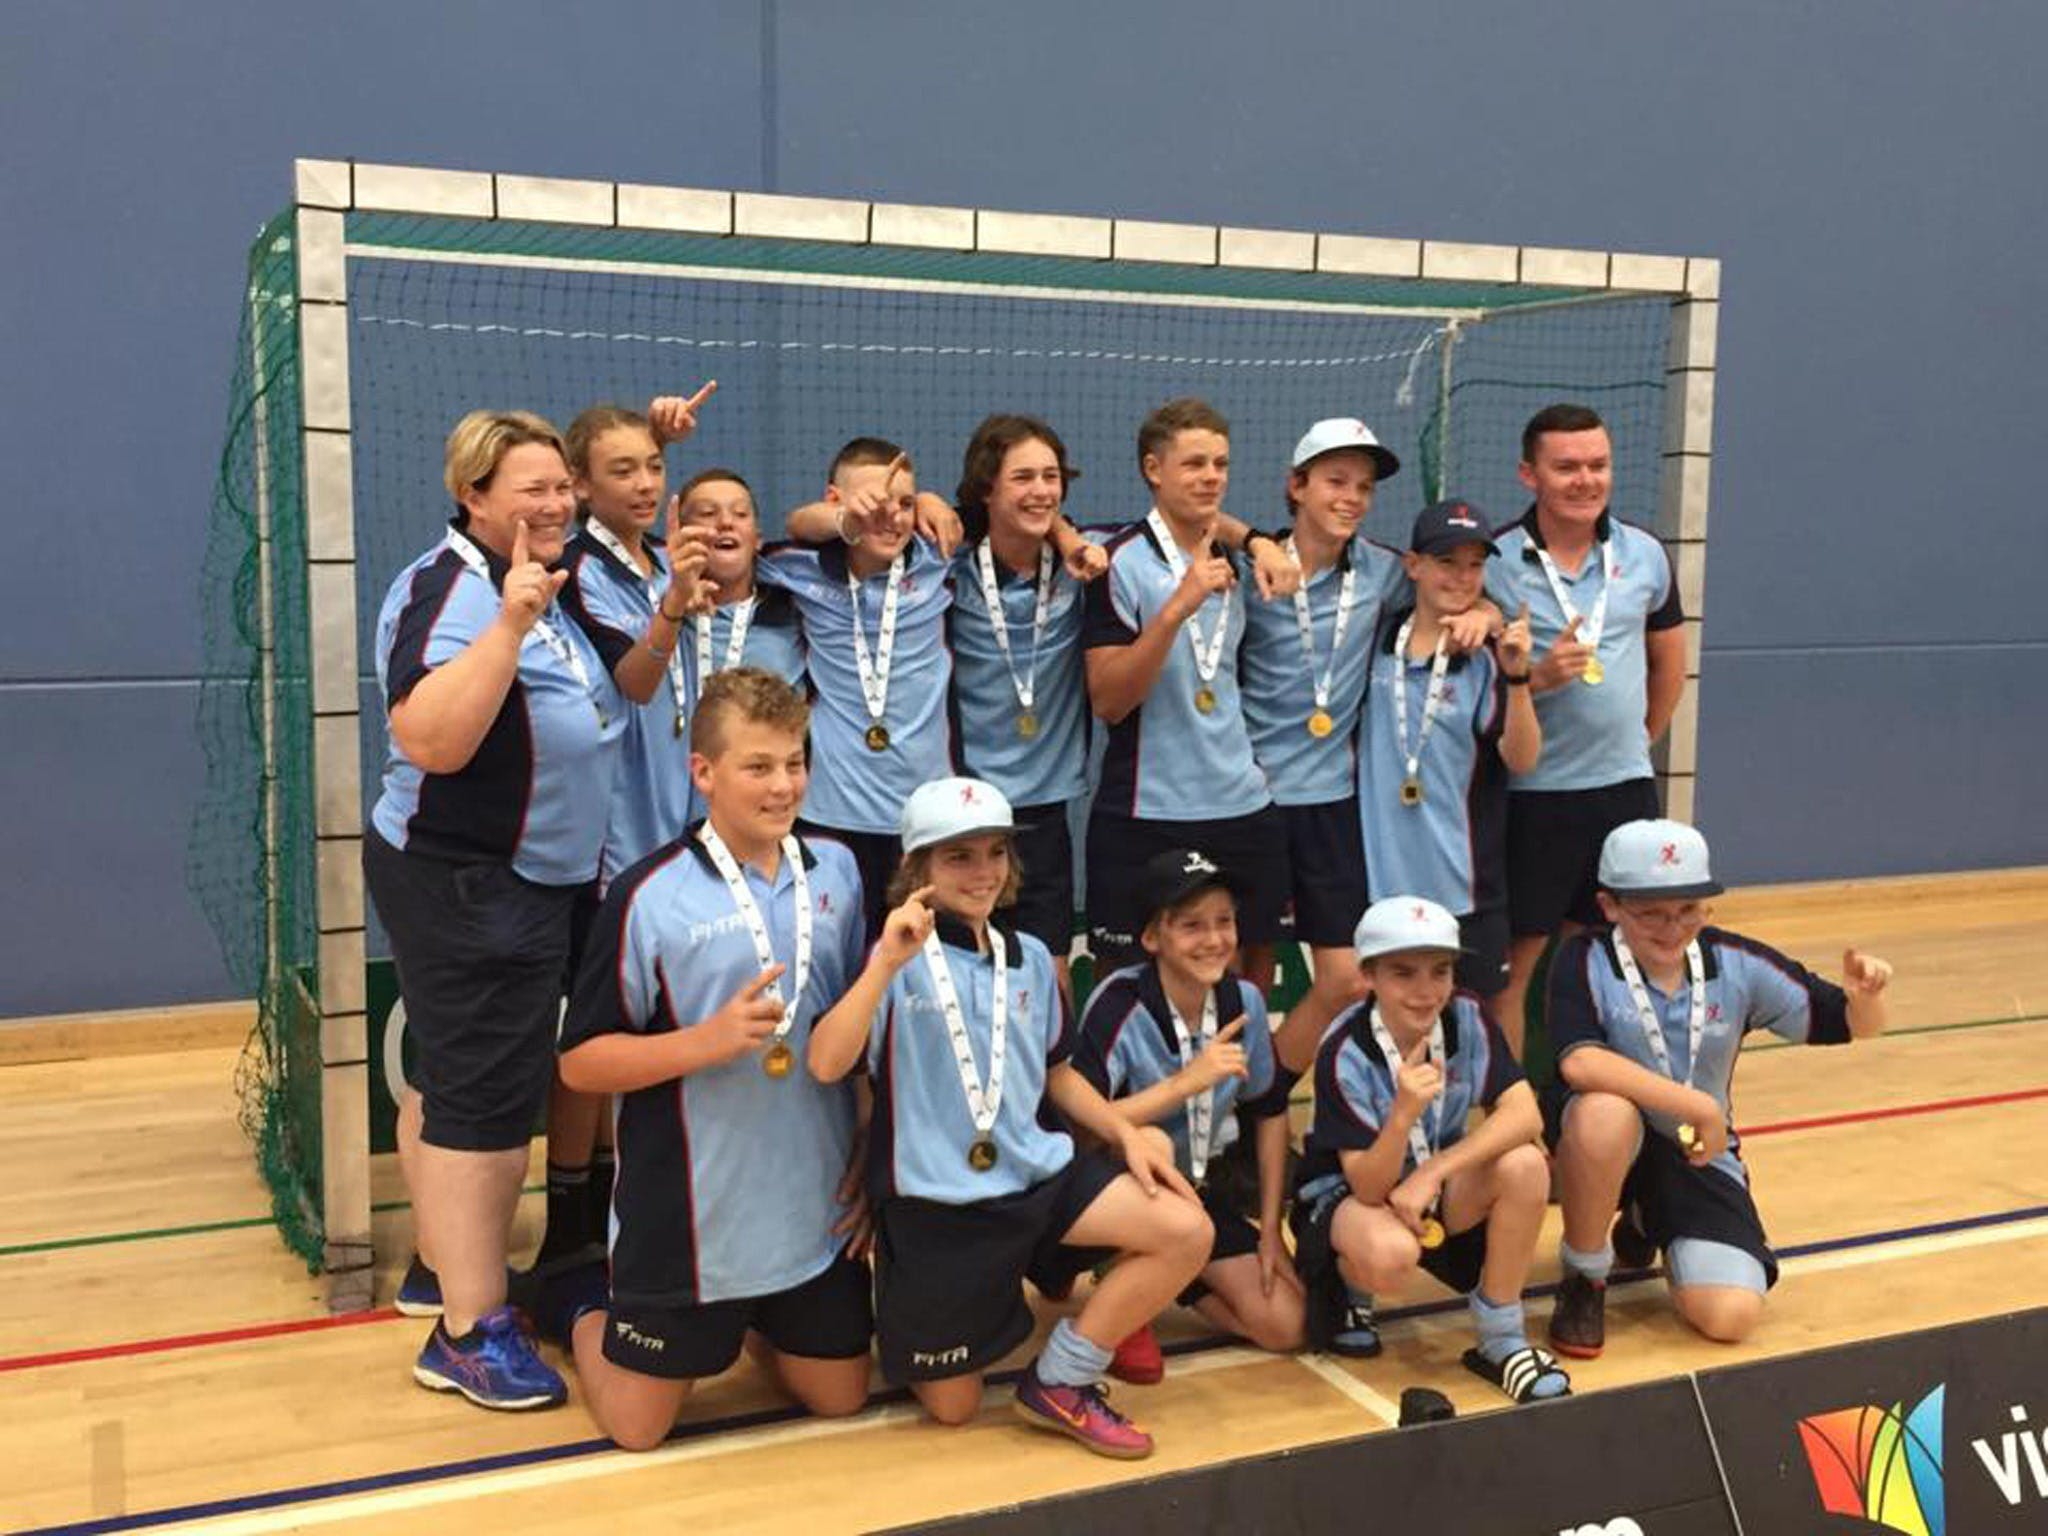 Hockey NSW Indoor State Championship  Under 18 Boys - Wagga Wagga Accommodation